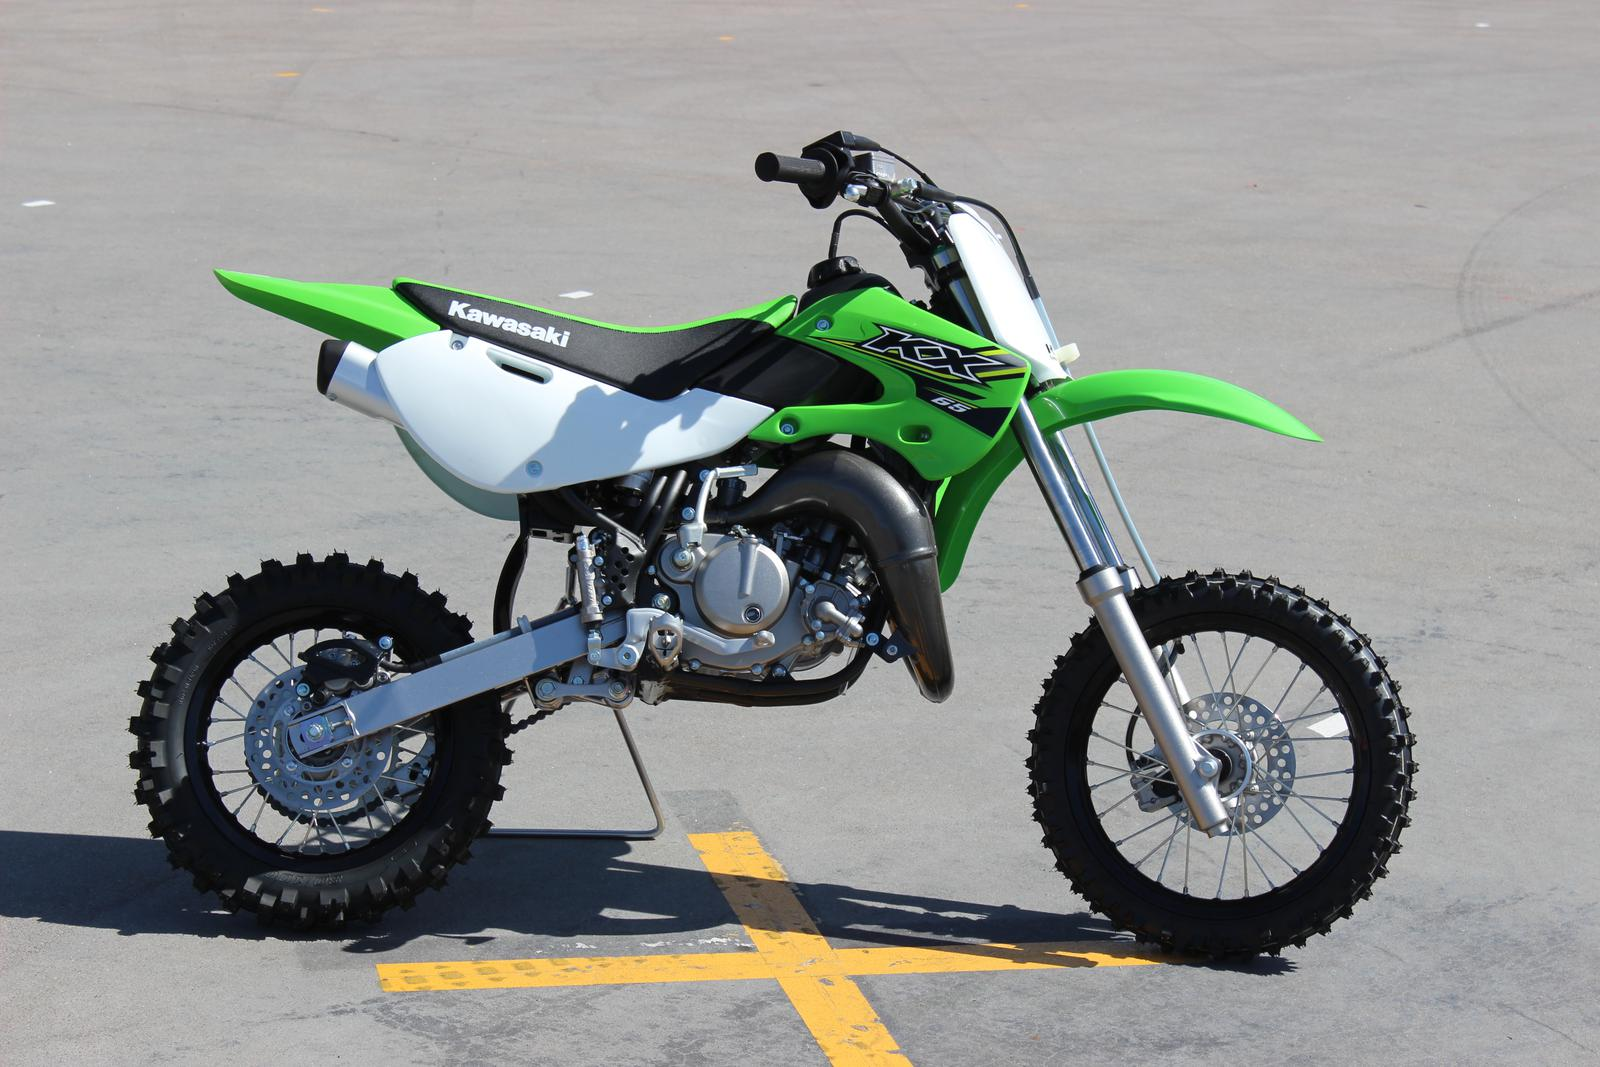 2017 Kawasaki KX 65 for sale in Scottsdale, AZ | GO AZ